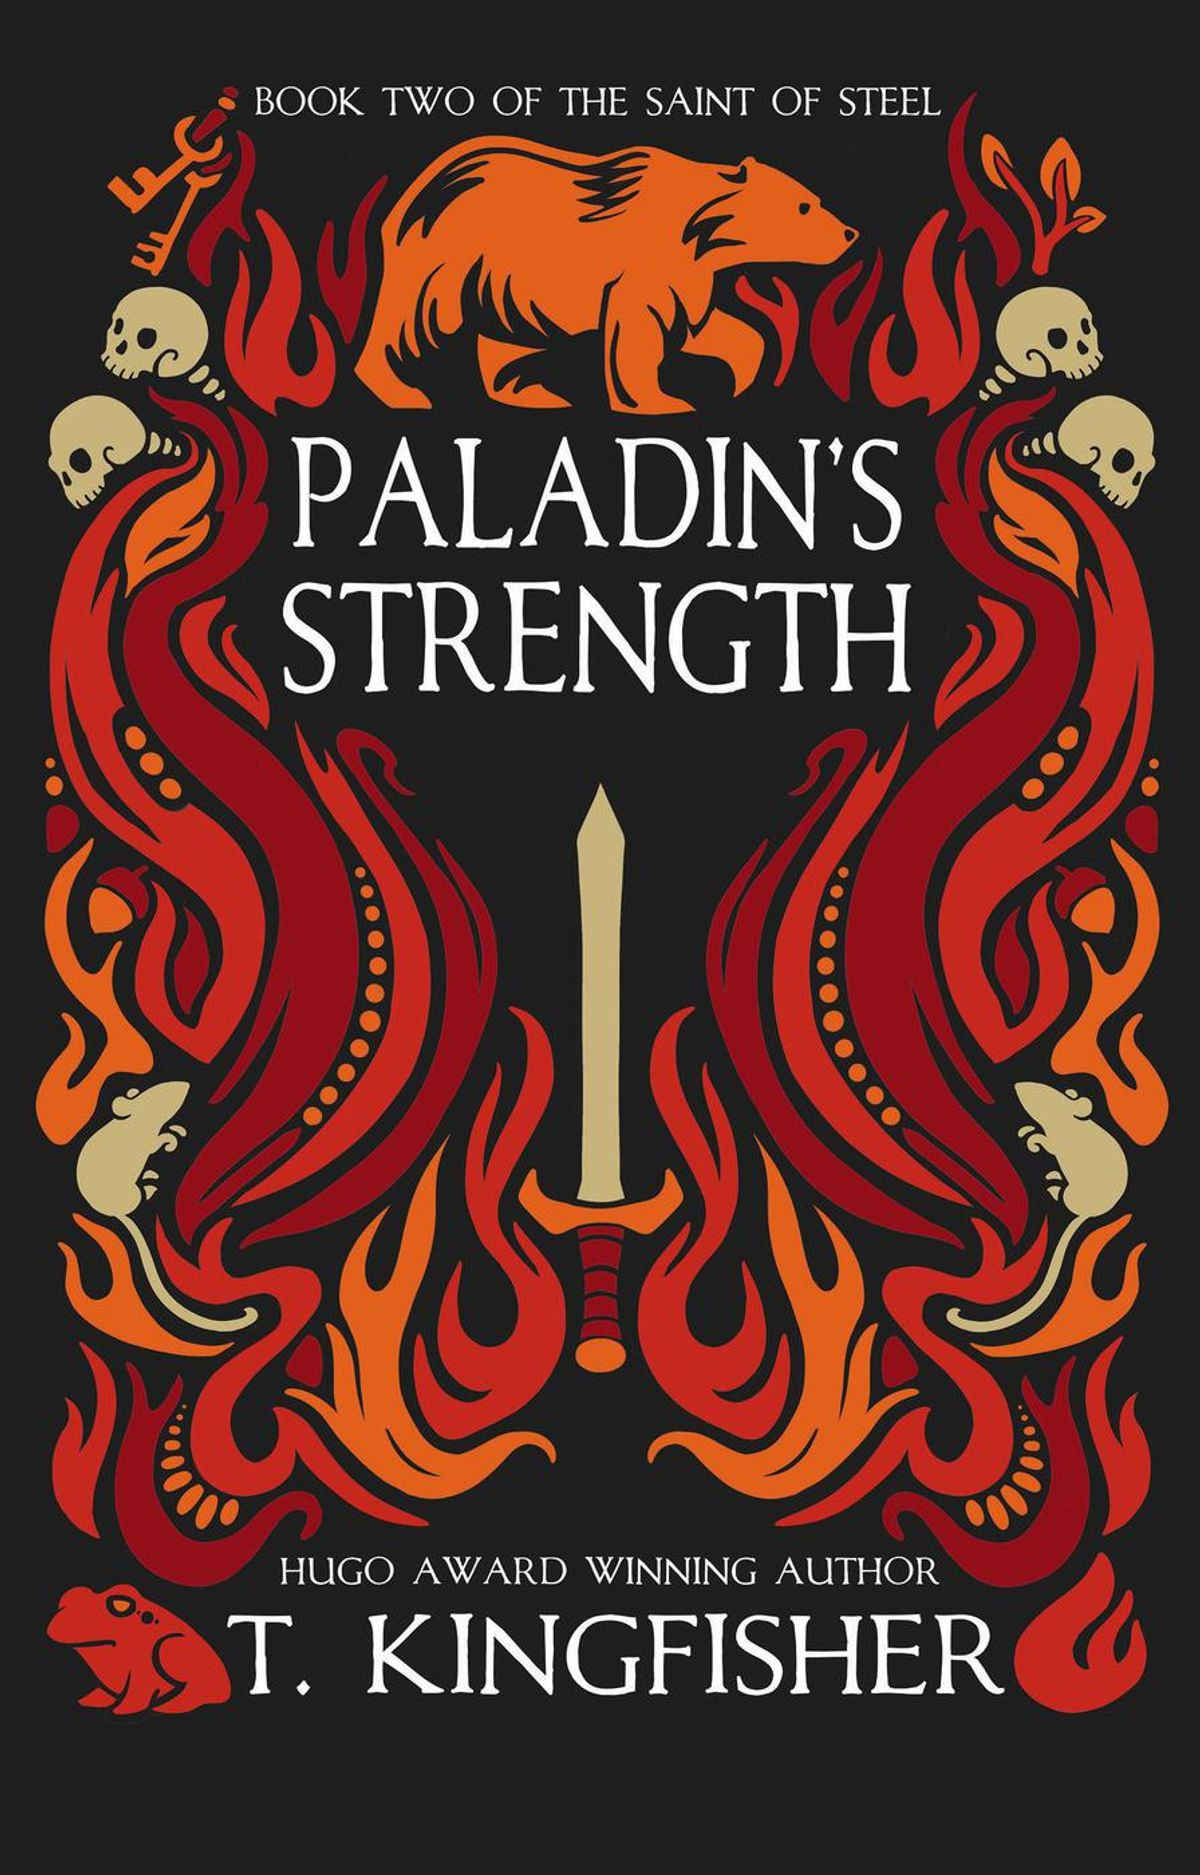 Paladin's Strength by T. Kingfisher